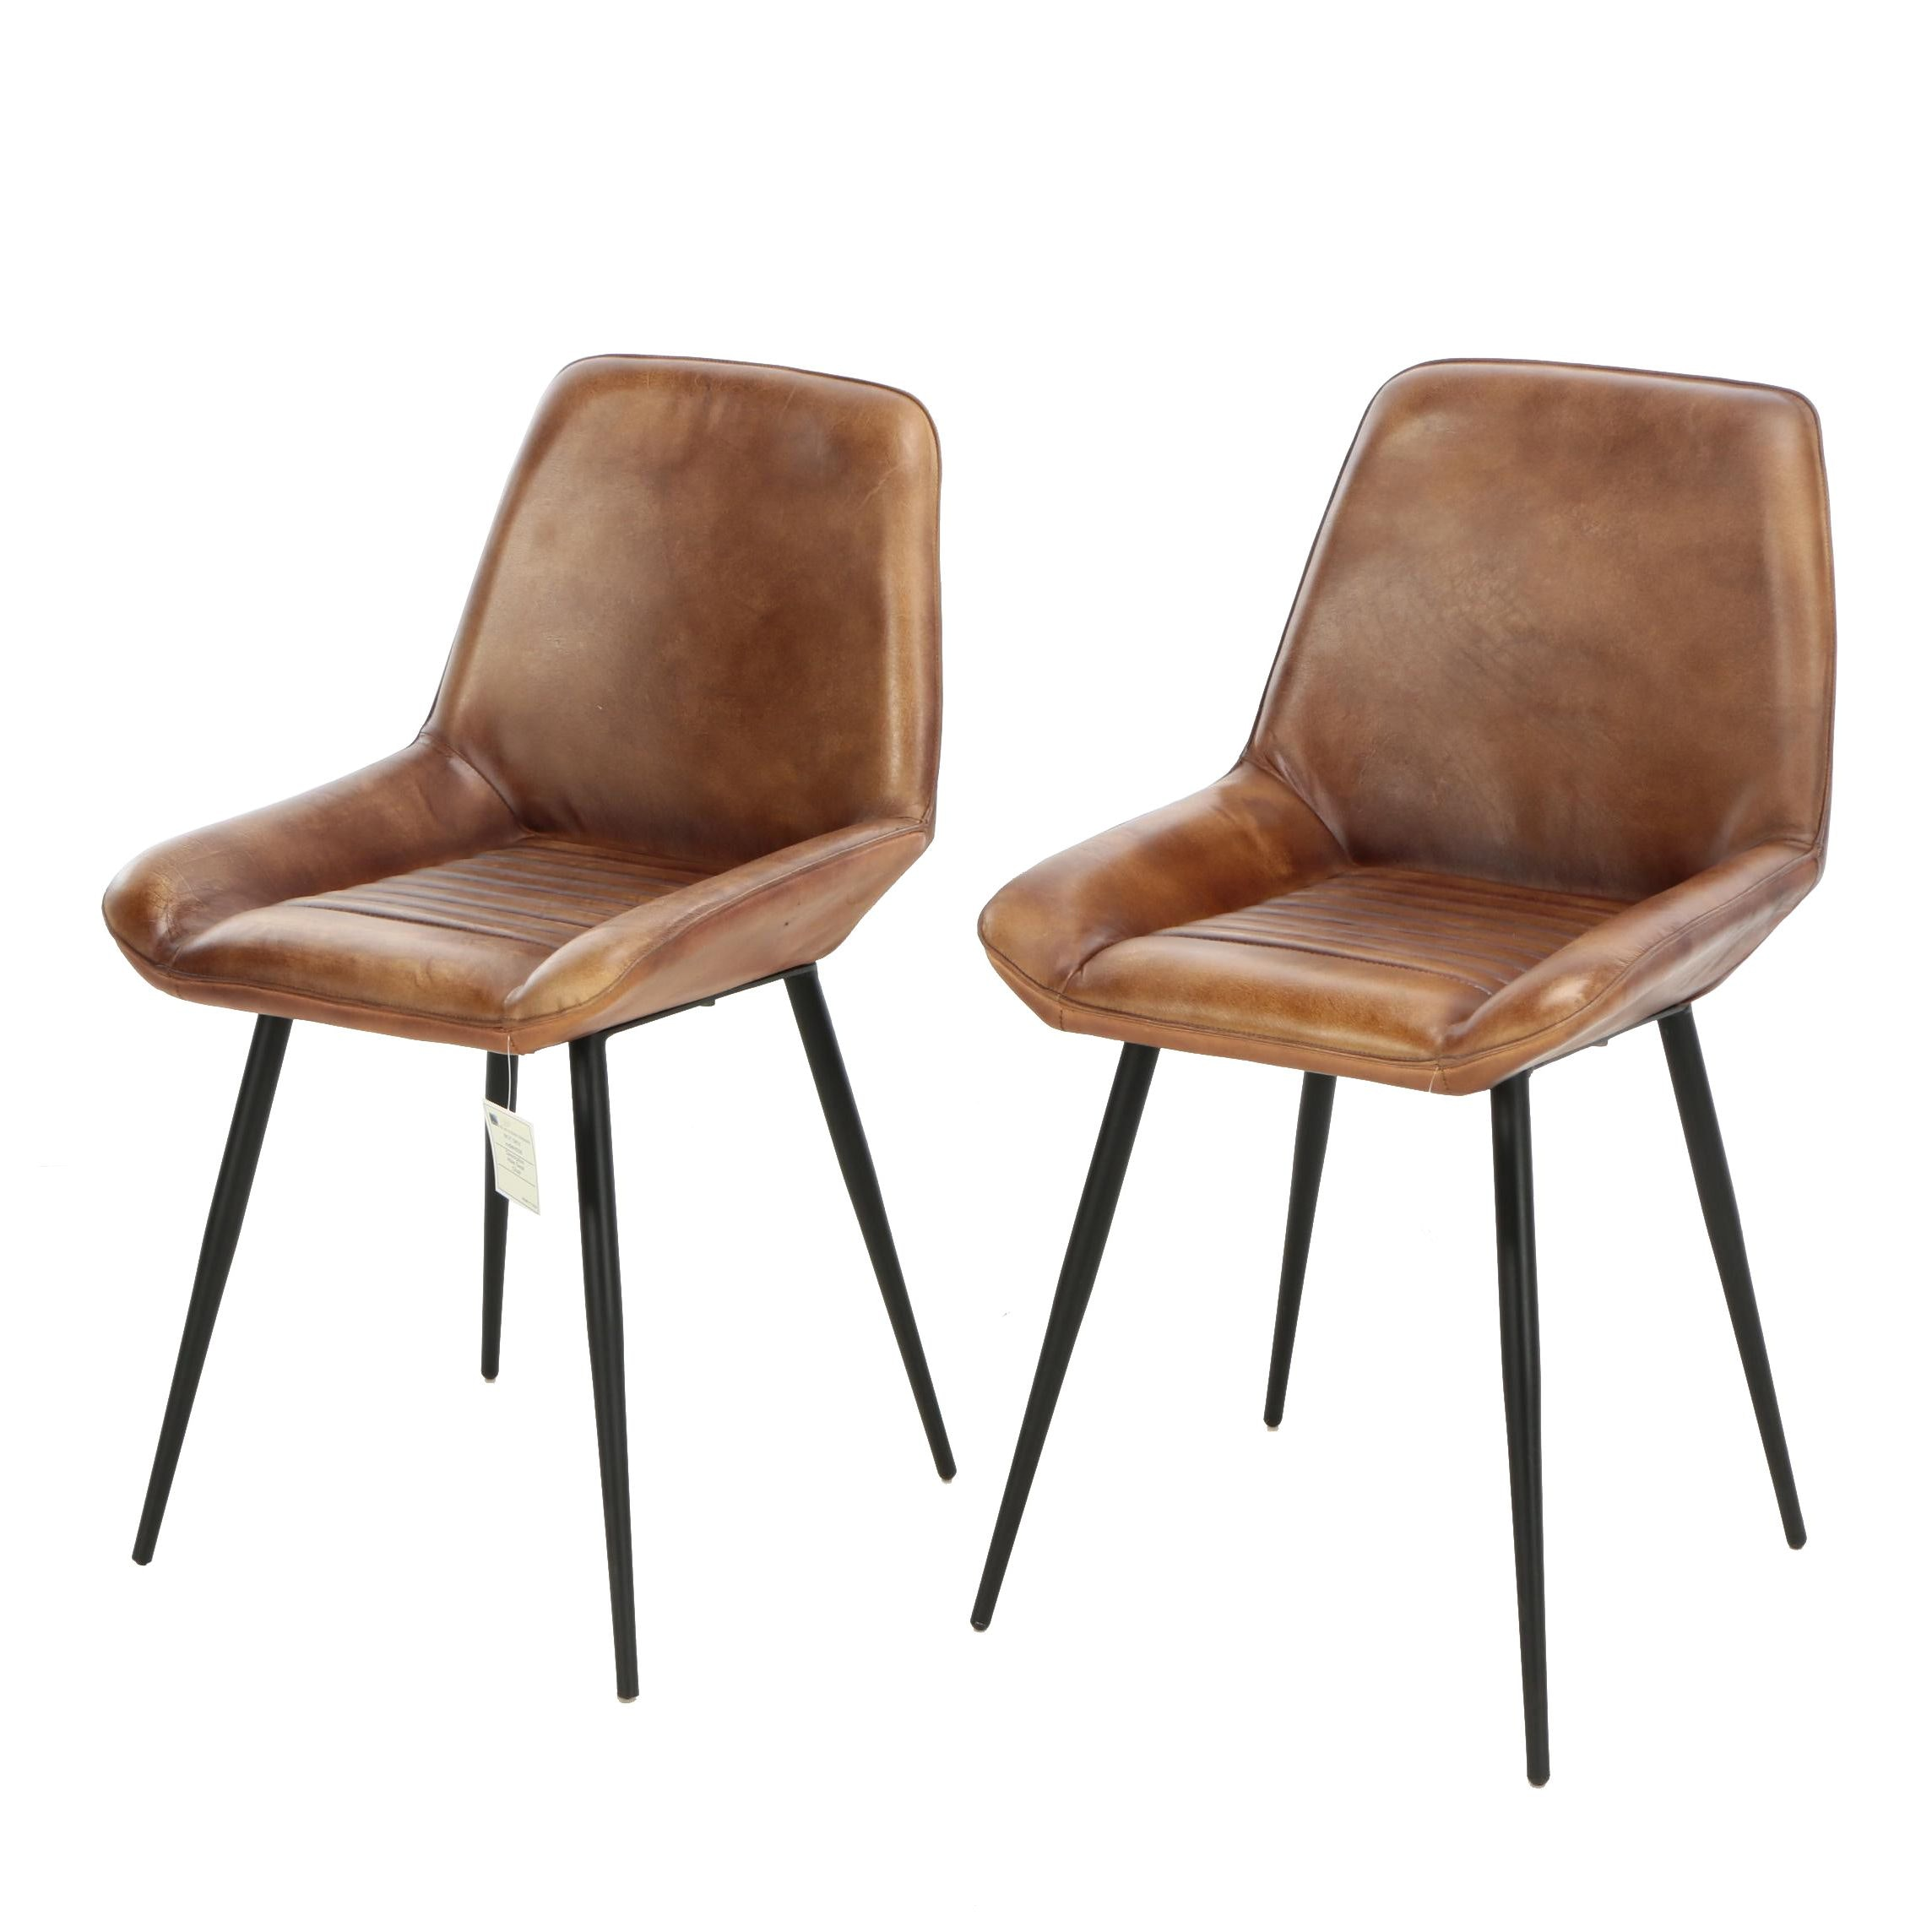 "Mid Century Modern Style ""Atlas"" Leather Desk Chairs"